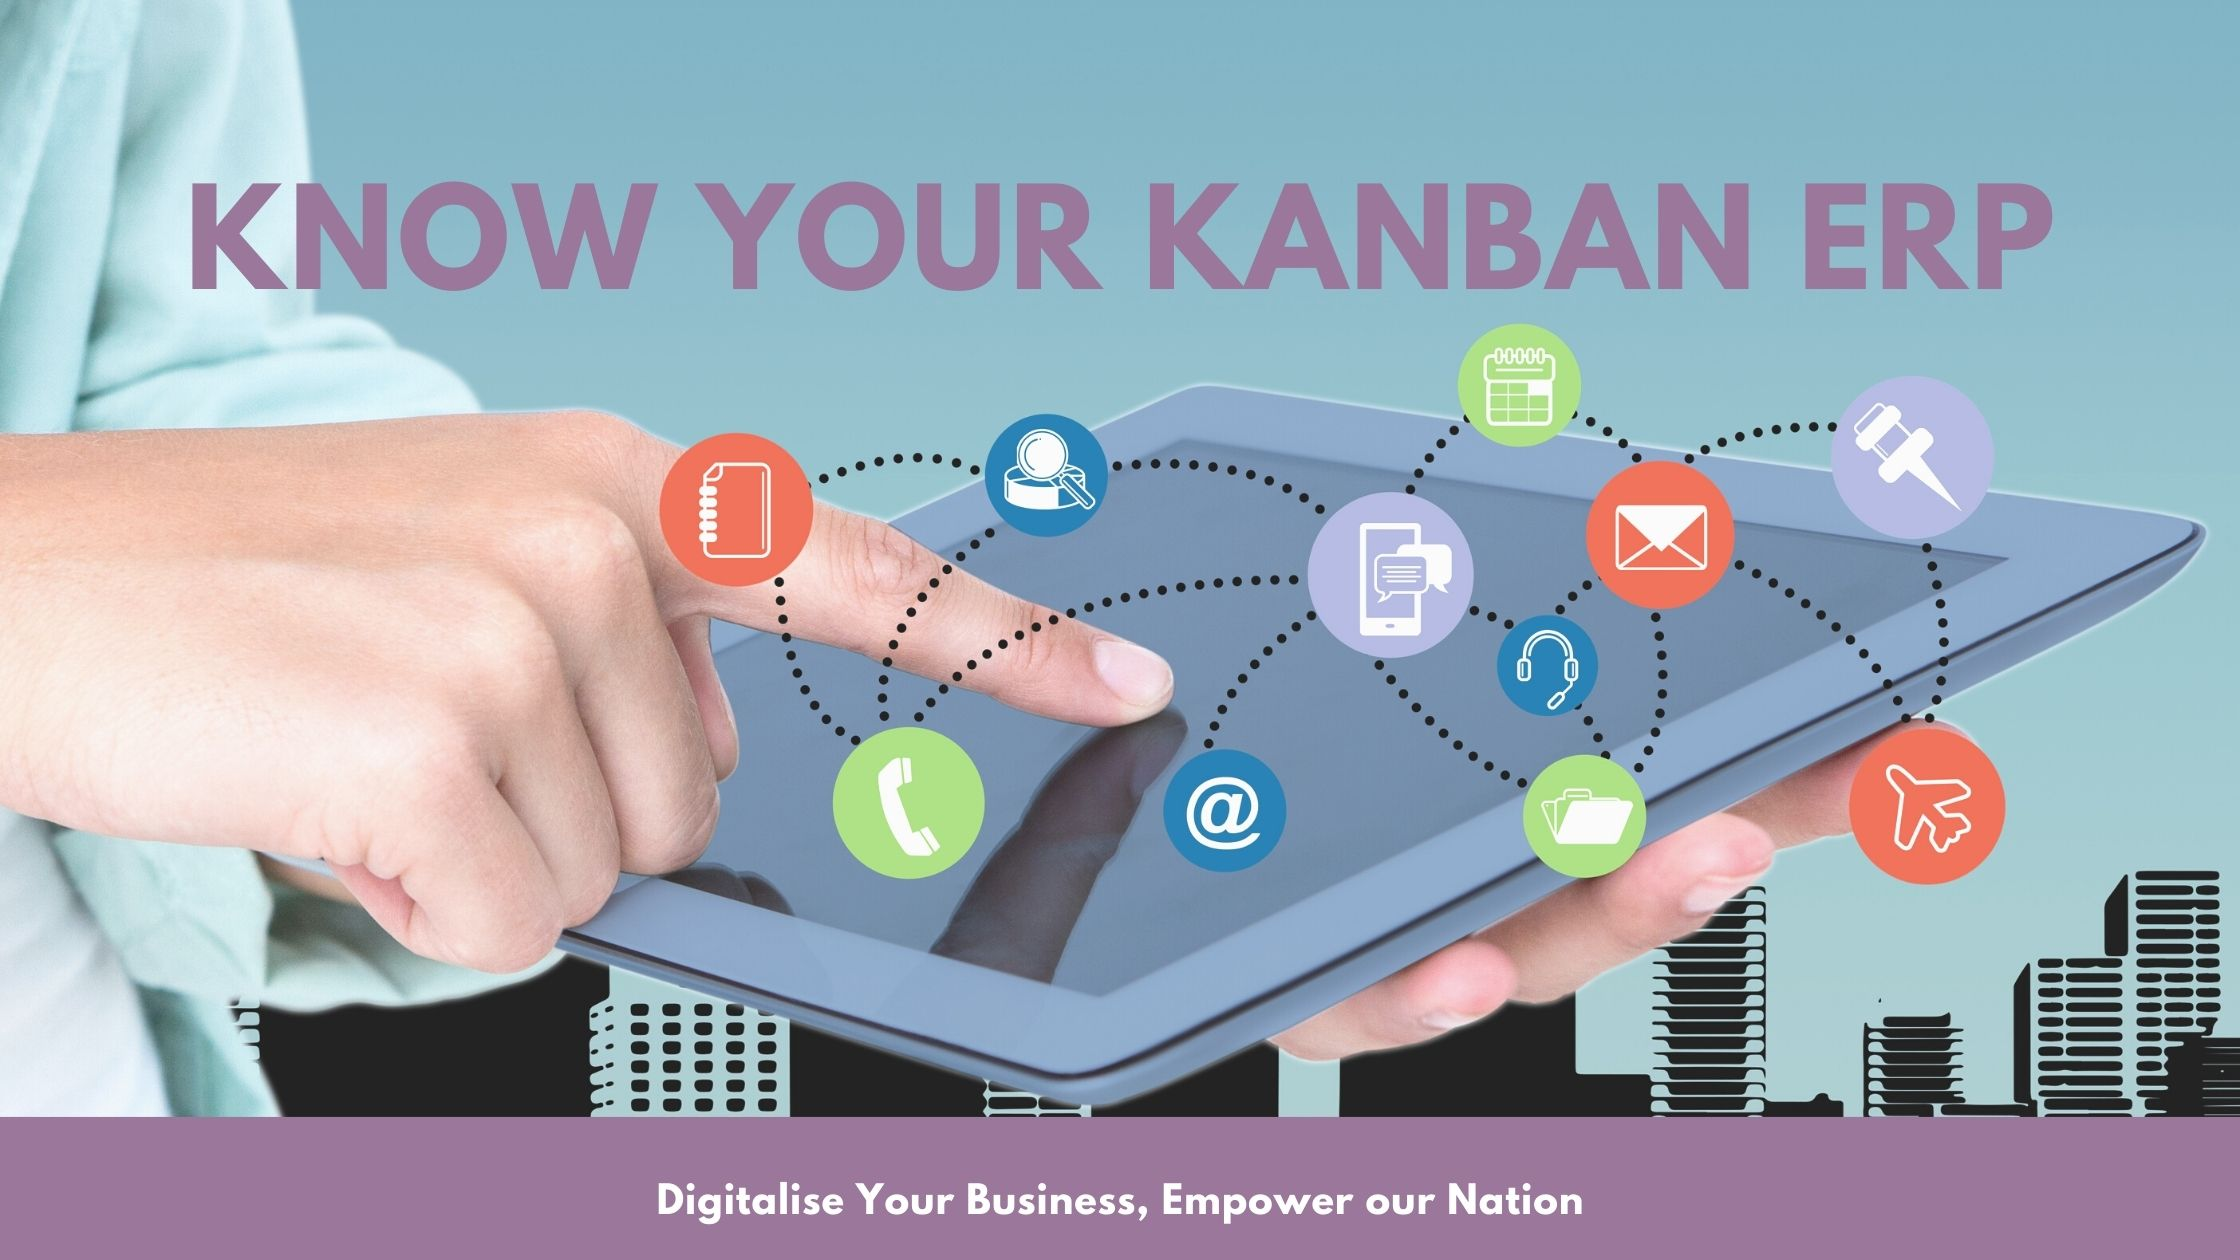 Kanban ERP | What is the Overall Equipment Effectiveness (OEE) of your ERP?